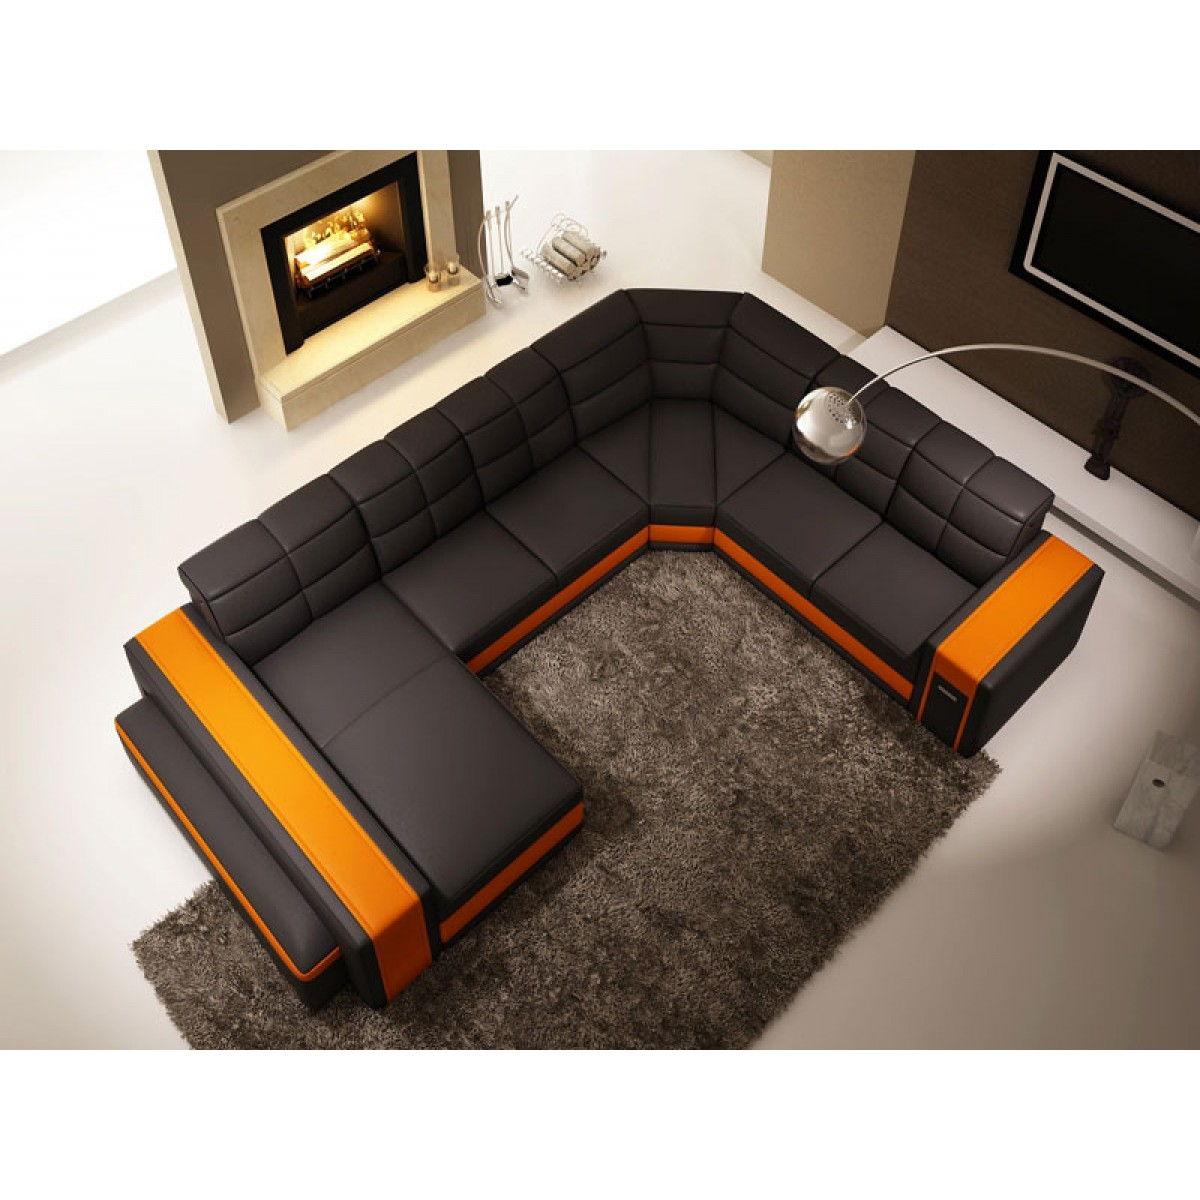 canap panoramique en cuir chambery canap s en u. Black Bedroom Furniture Sets. Home Design Ideas